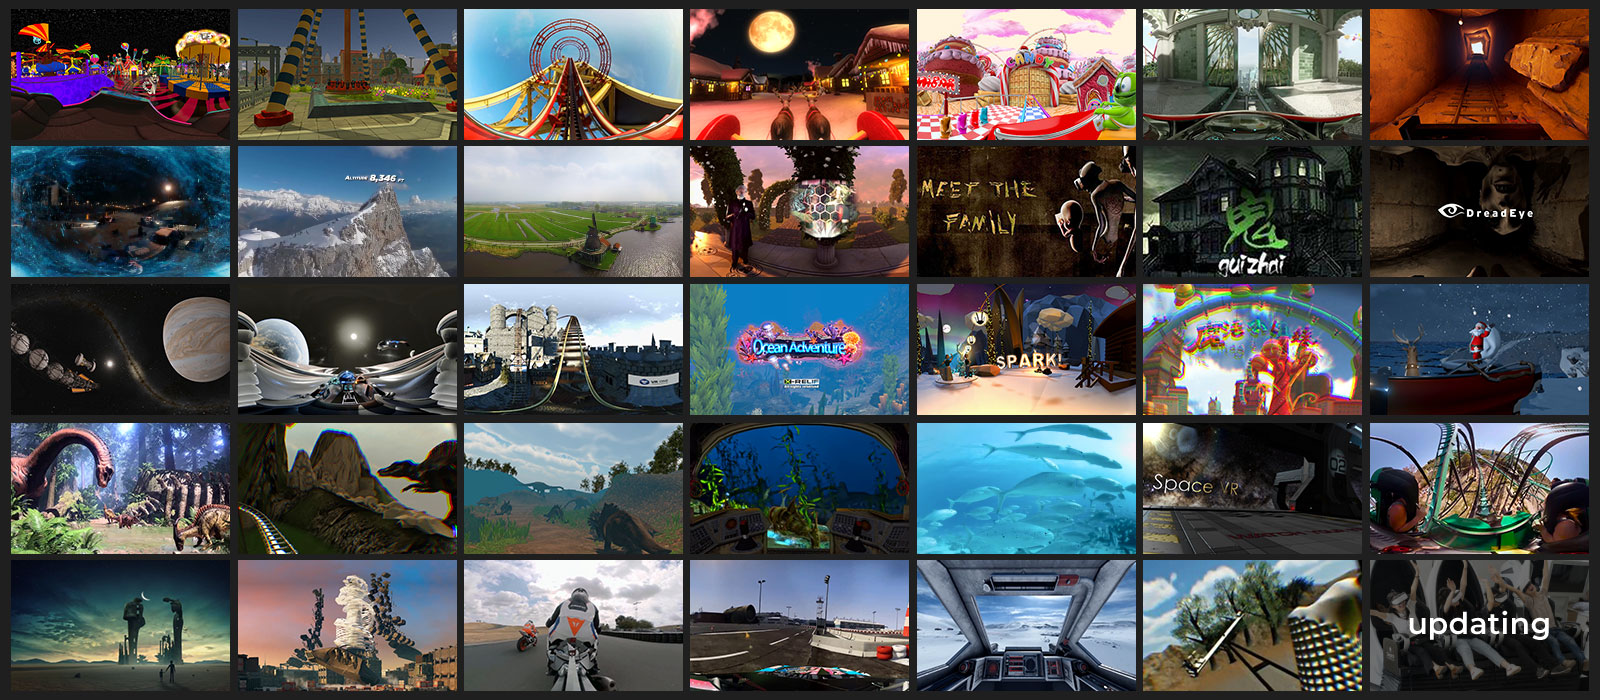 vr games / games / steam game